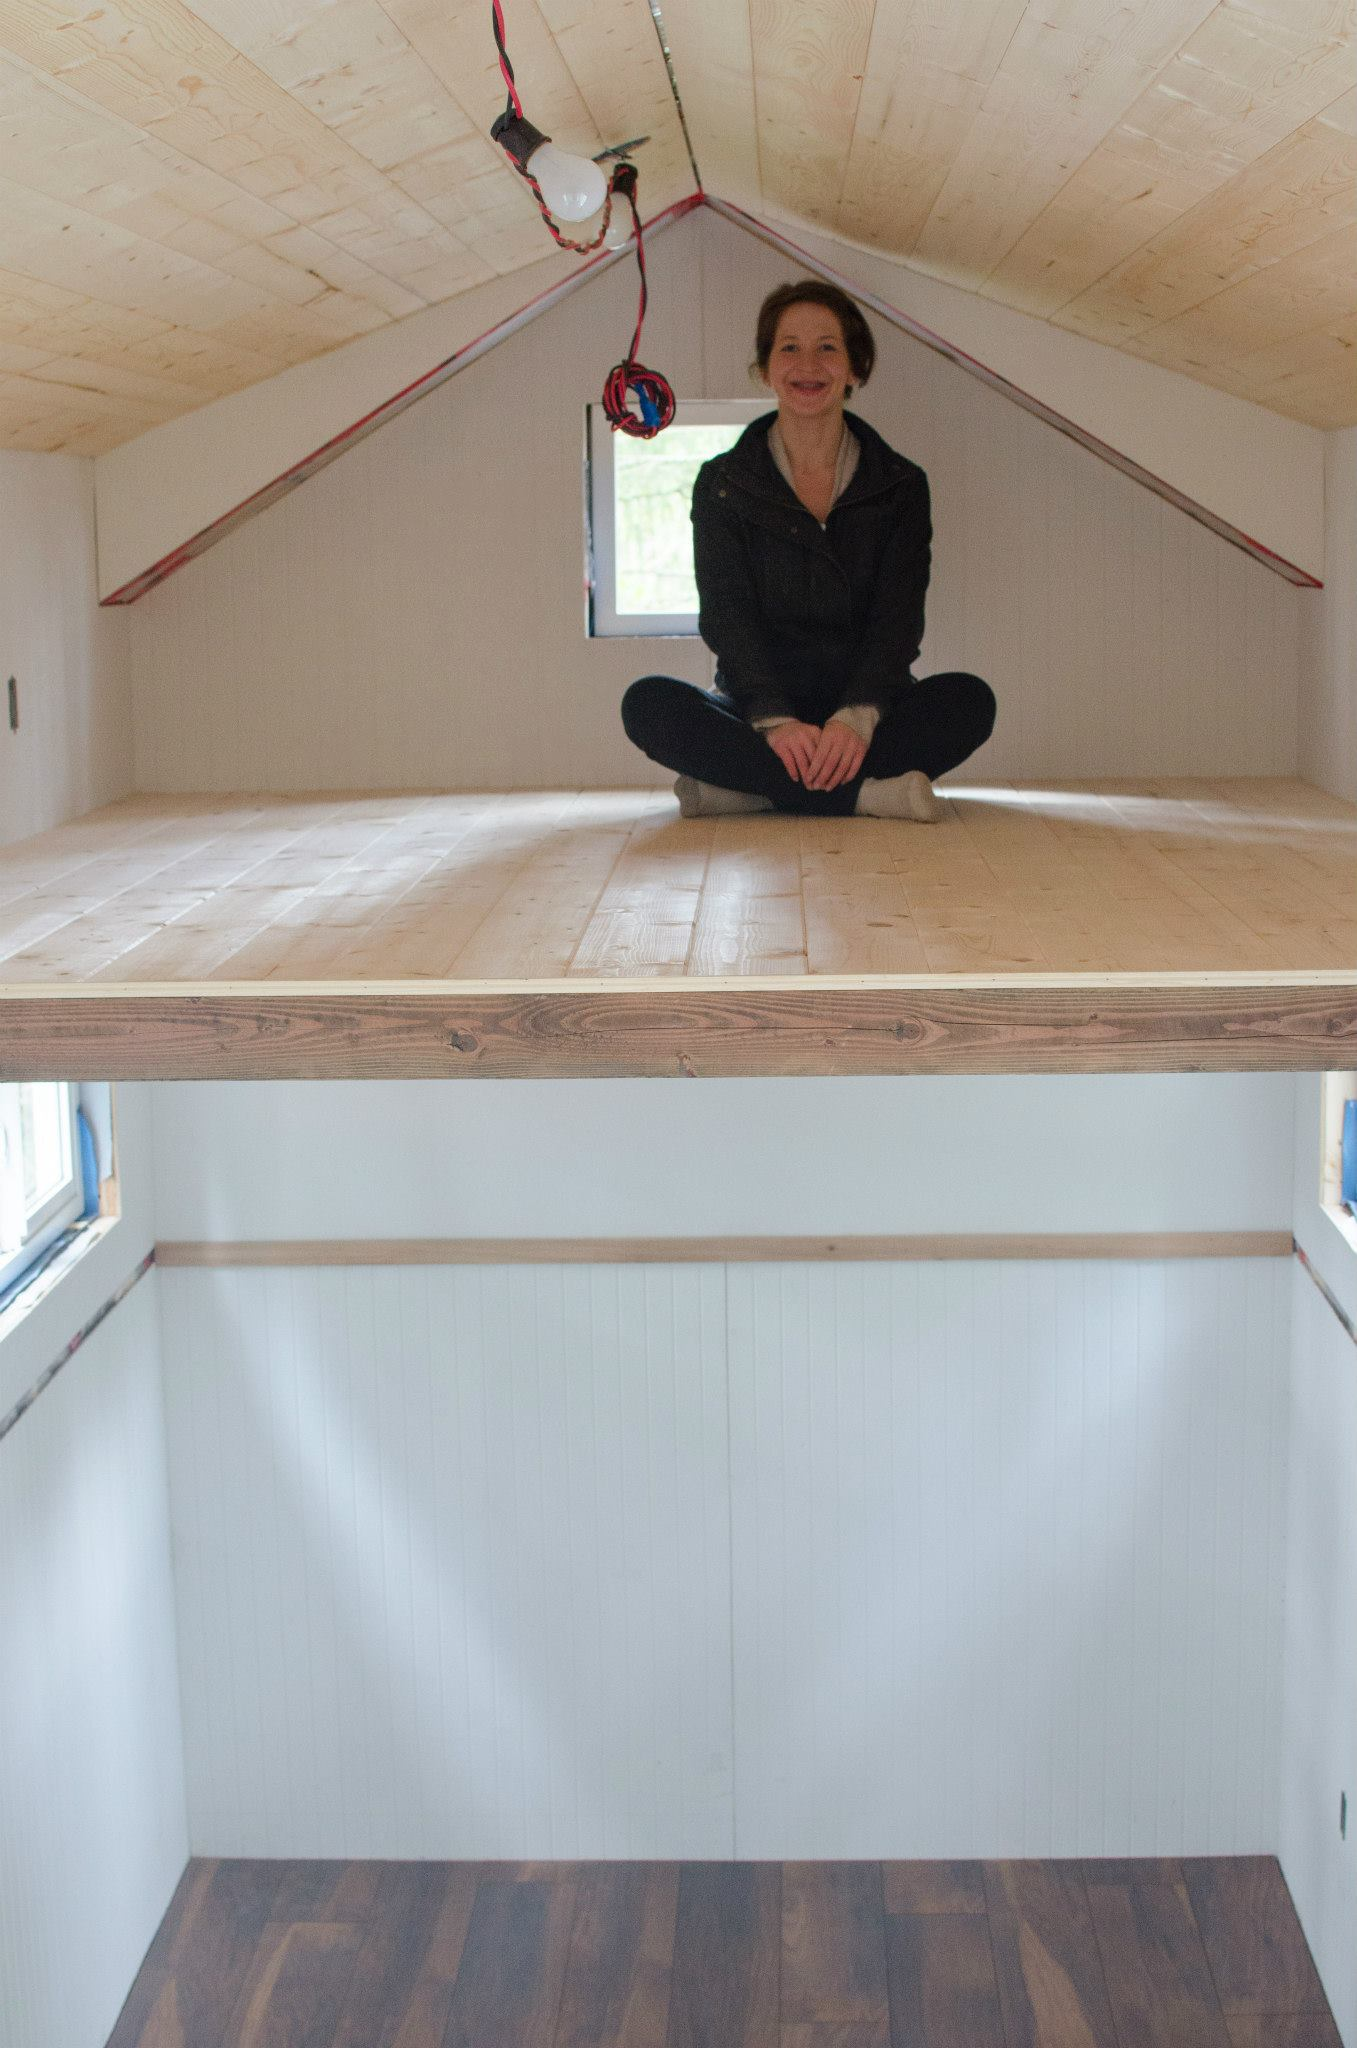 There is way more head room than expected in the loft. The floor is a nice light pine.